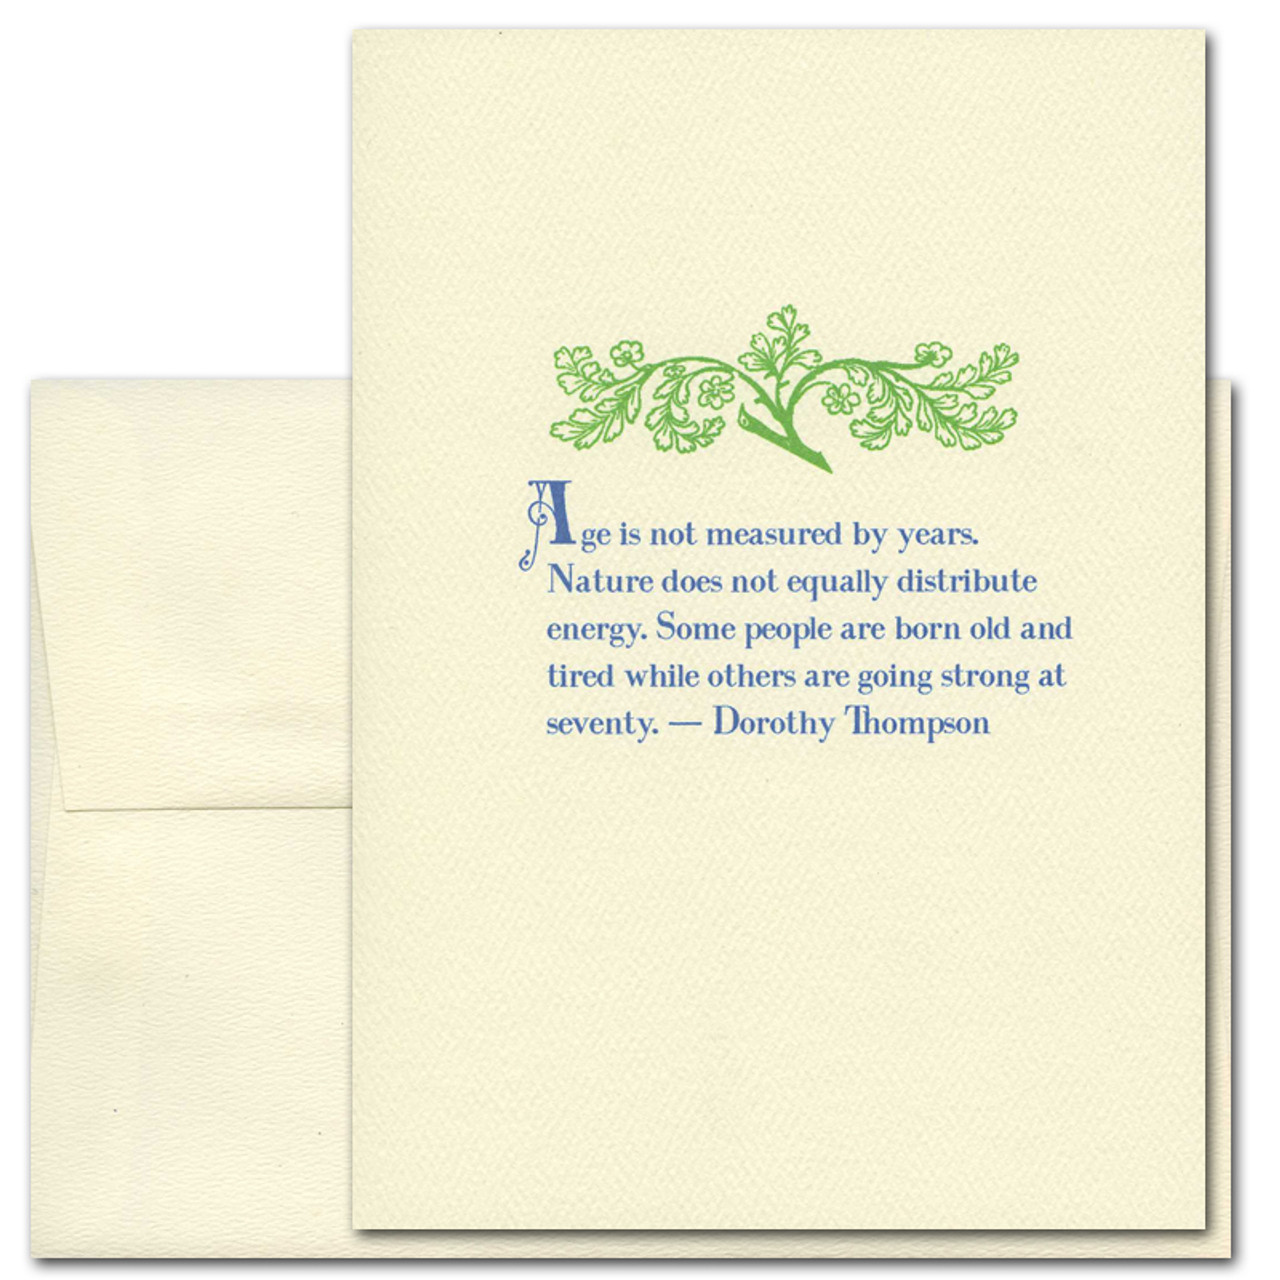 "Quotation Card ""Age Is Not Measured: Thompson"" Cover shows vintage illustration of a green leafy branch with a quote by Dorothy Thompson that reads: ""Age is not measured by years. Nature does not equally distribute energy. Some people are born old and tired while others are going strong at seventy."""